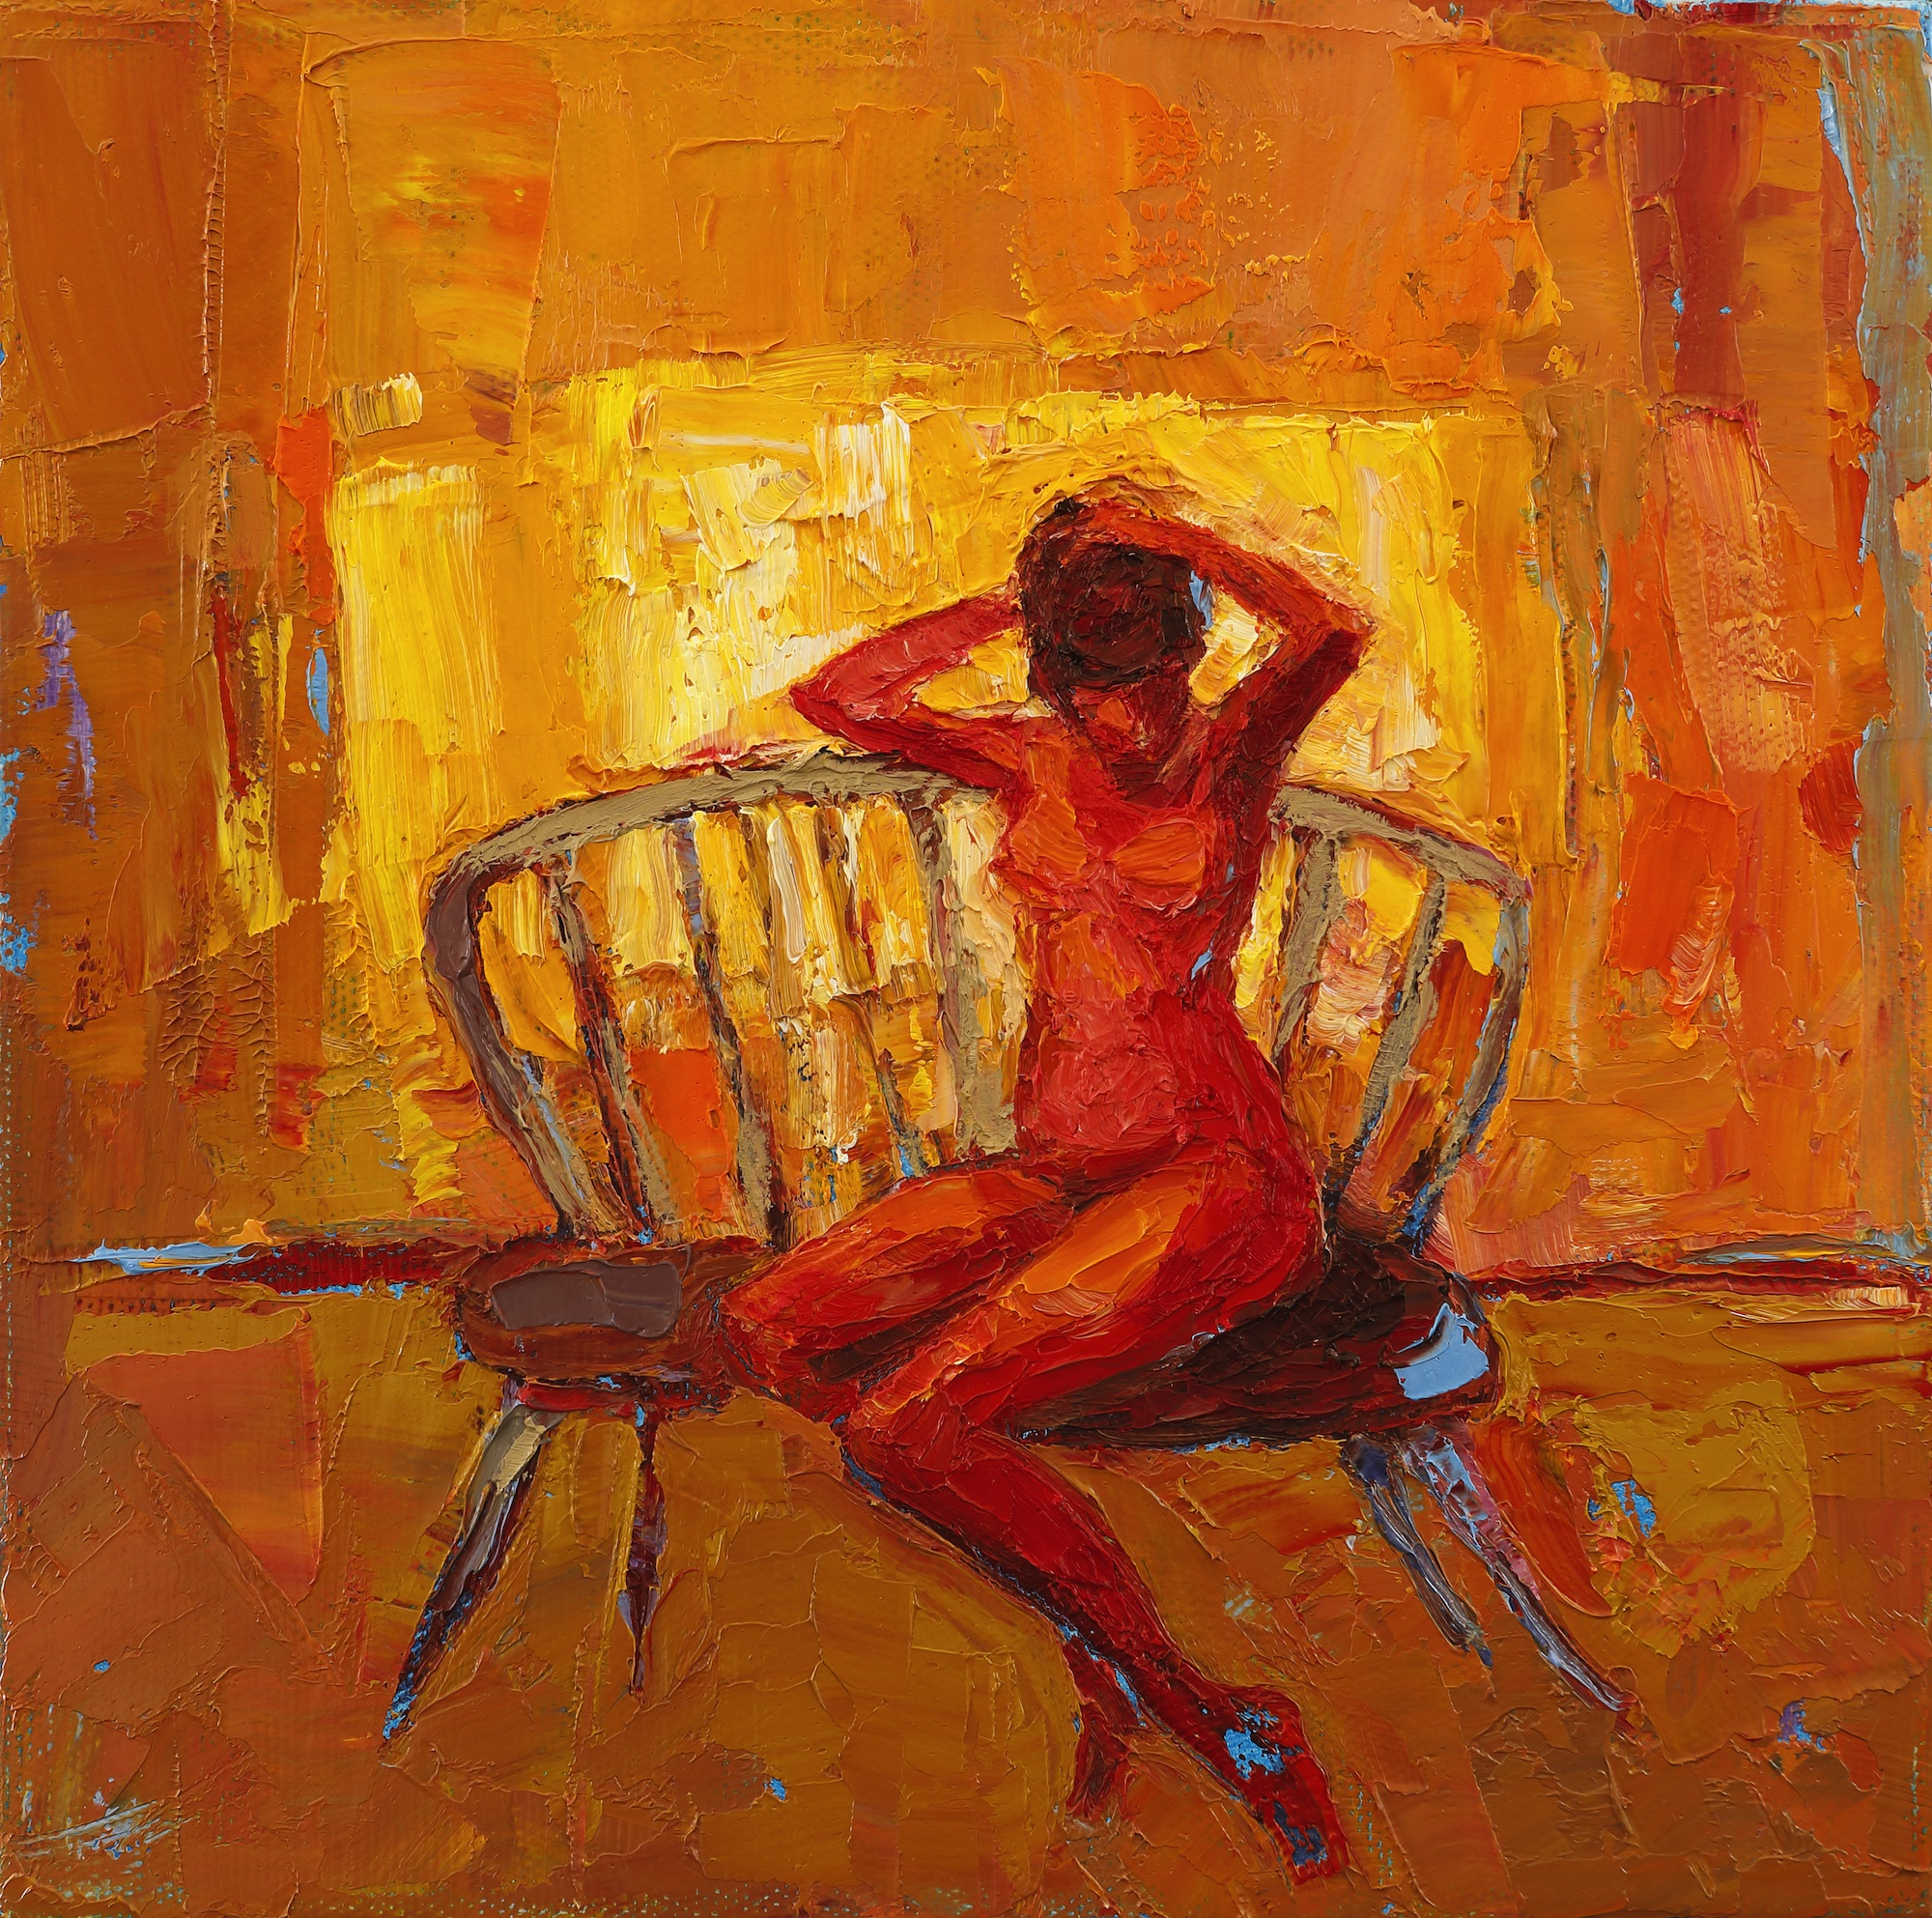 Title: Seat in the Sun Size: 8 x 8 inches Medium: Oil on Canvas Price: SOLD